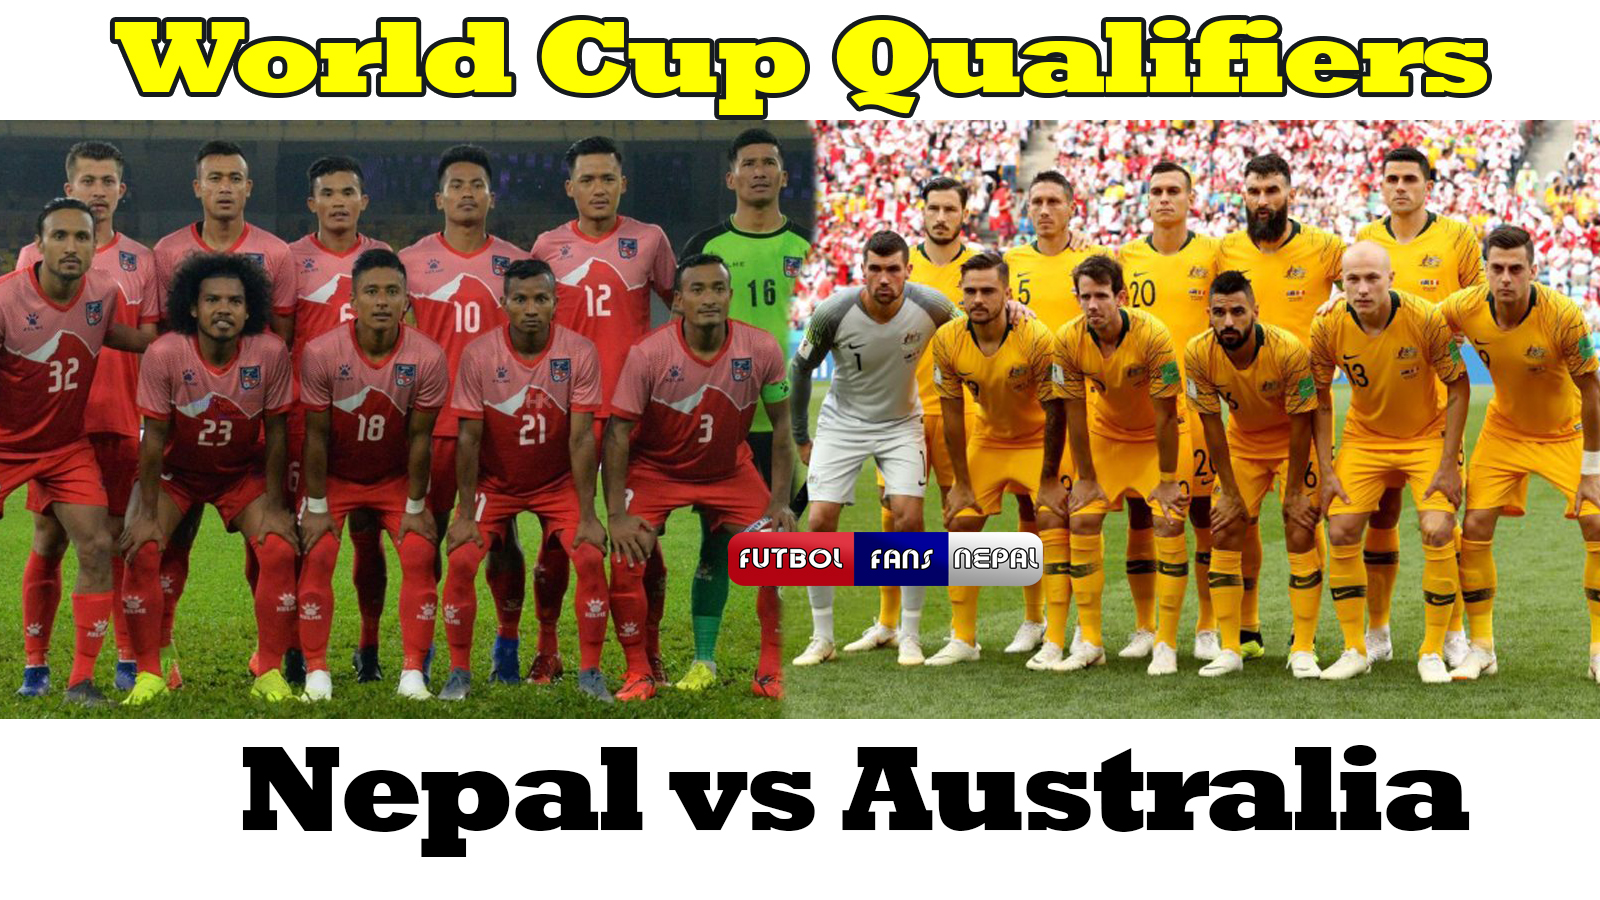 Nepal National Team Player Quarantine ahead of World Cup qualifiers